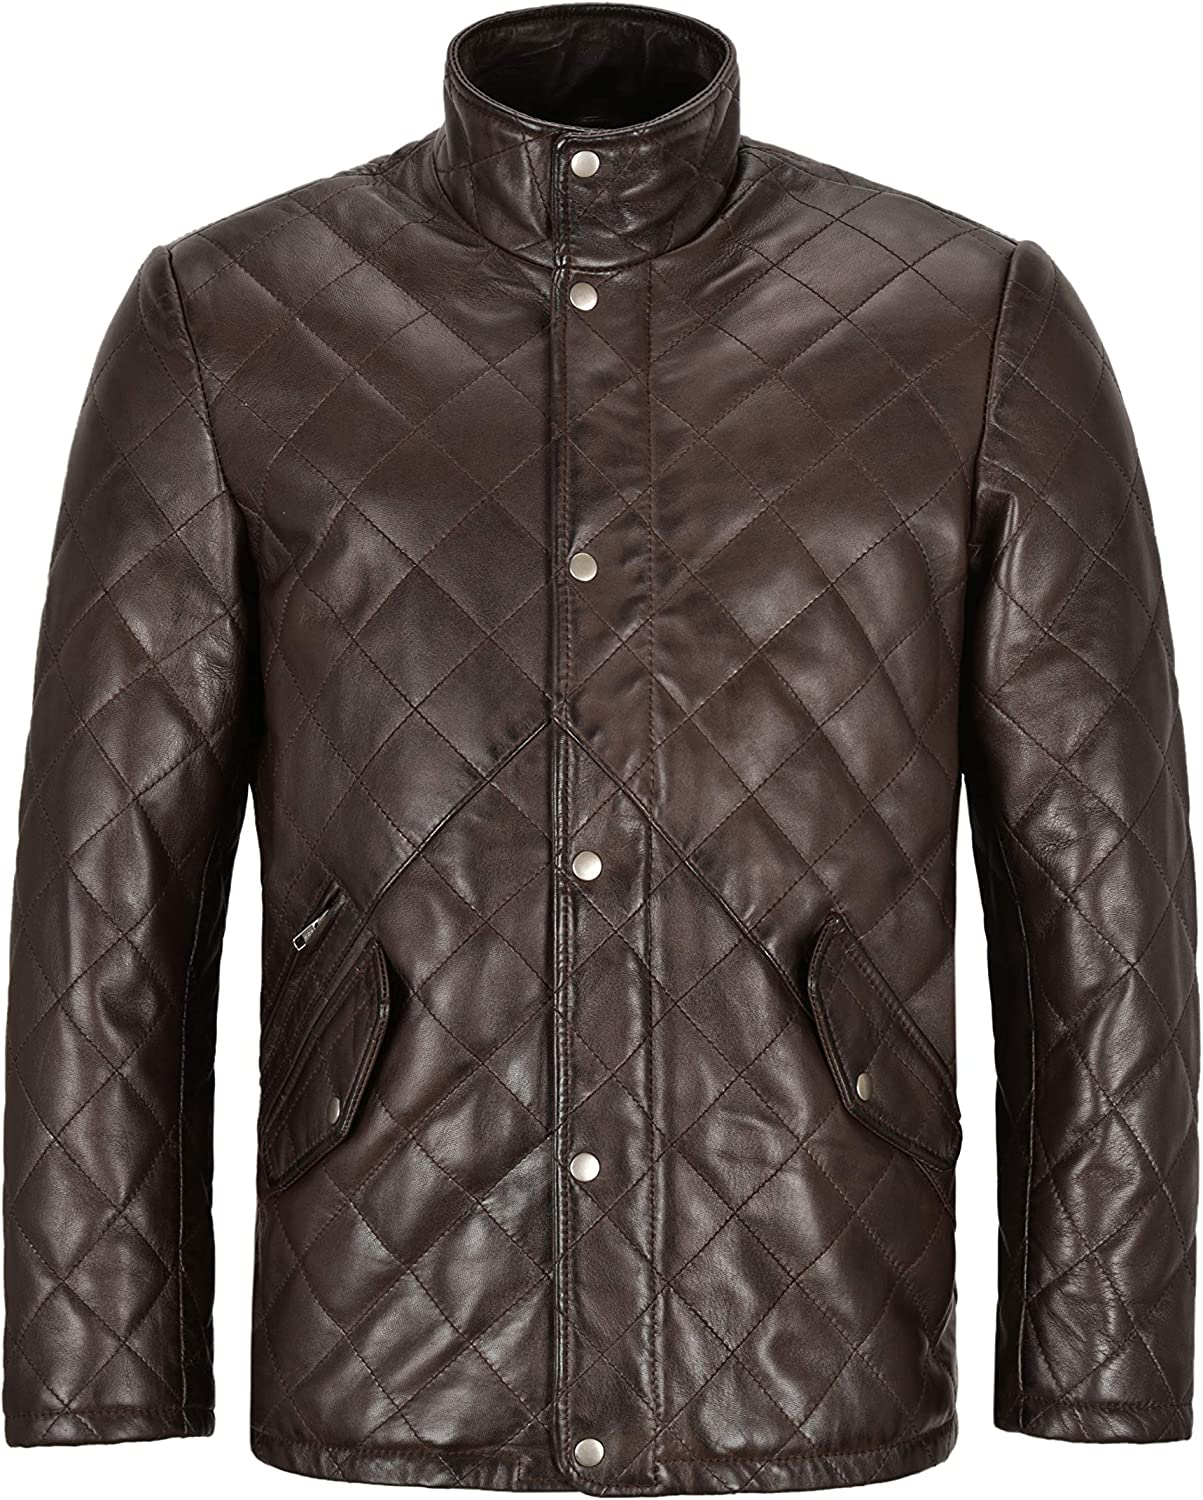 Men's Quilted Leather Jacket Brown Classic Real Lambskin 70's Fashion Jacket UK